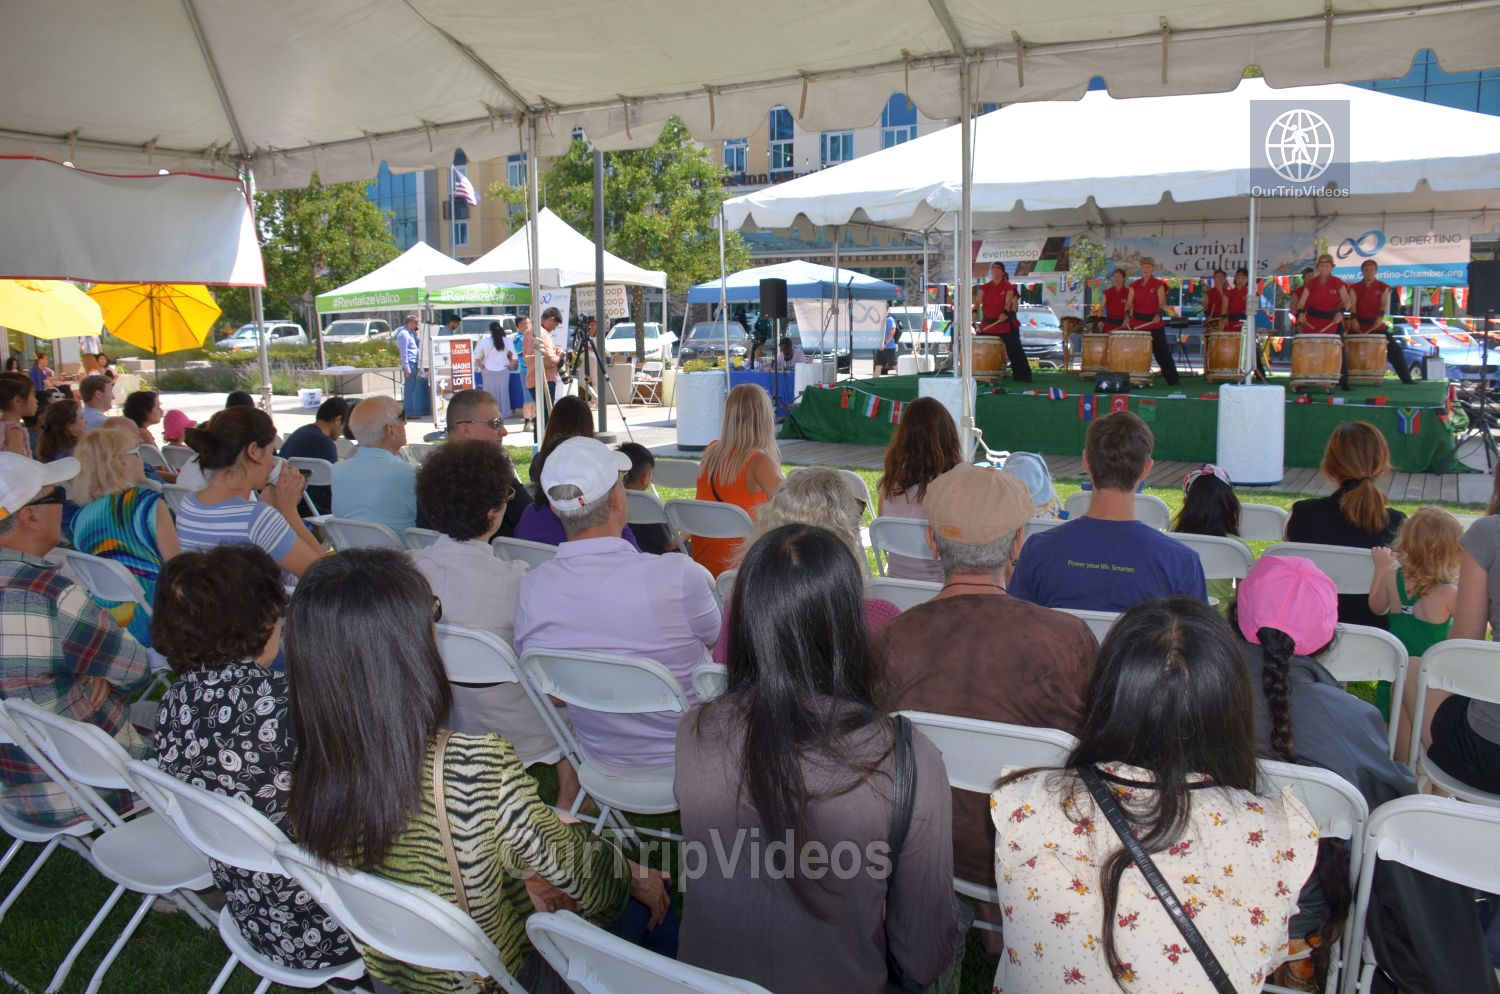 Carnival of Cultures, Cupertino, CA, USA - Picture 6 of 25